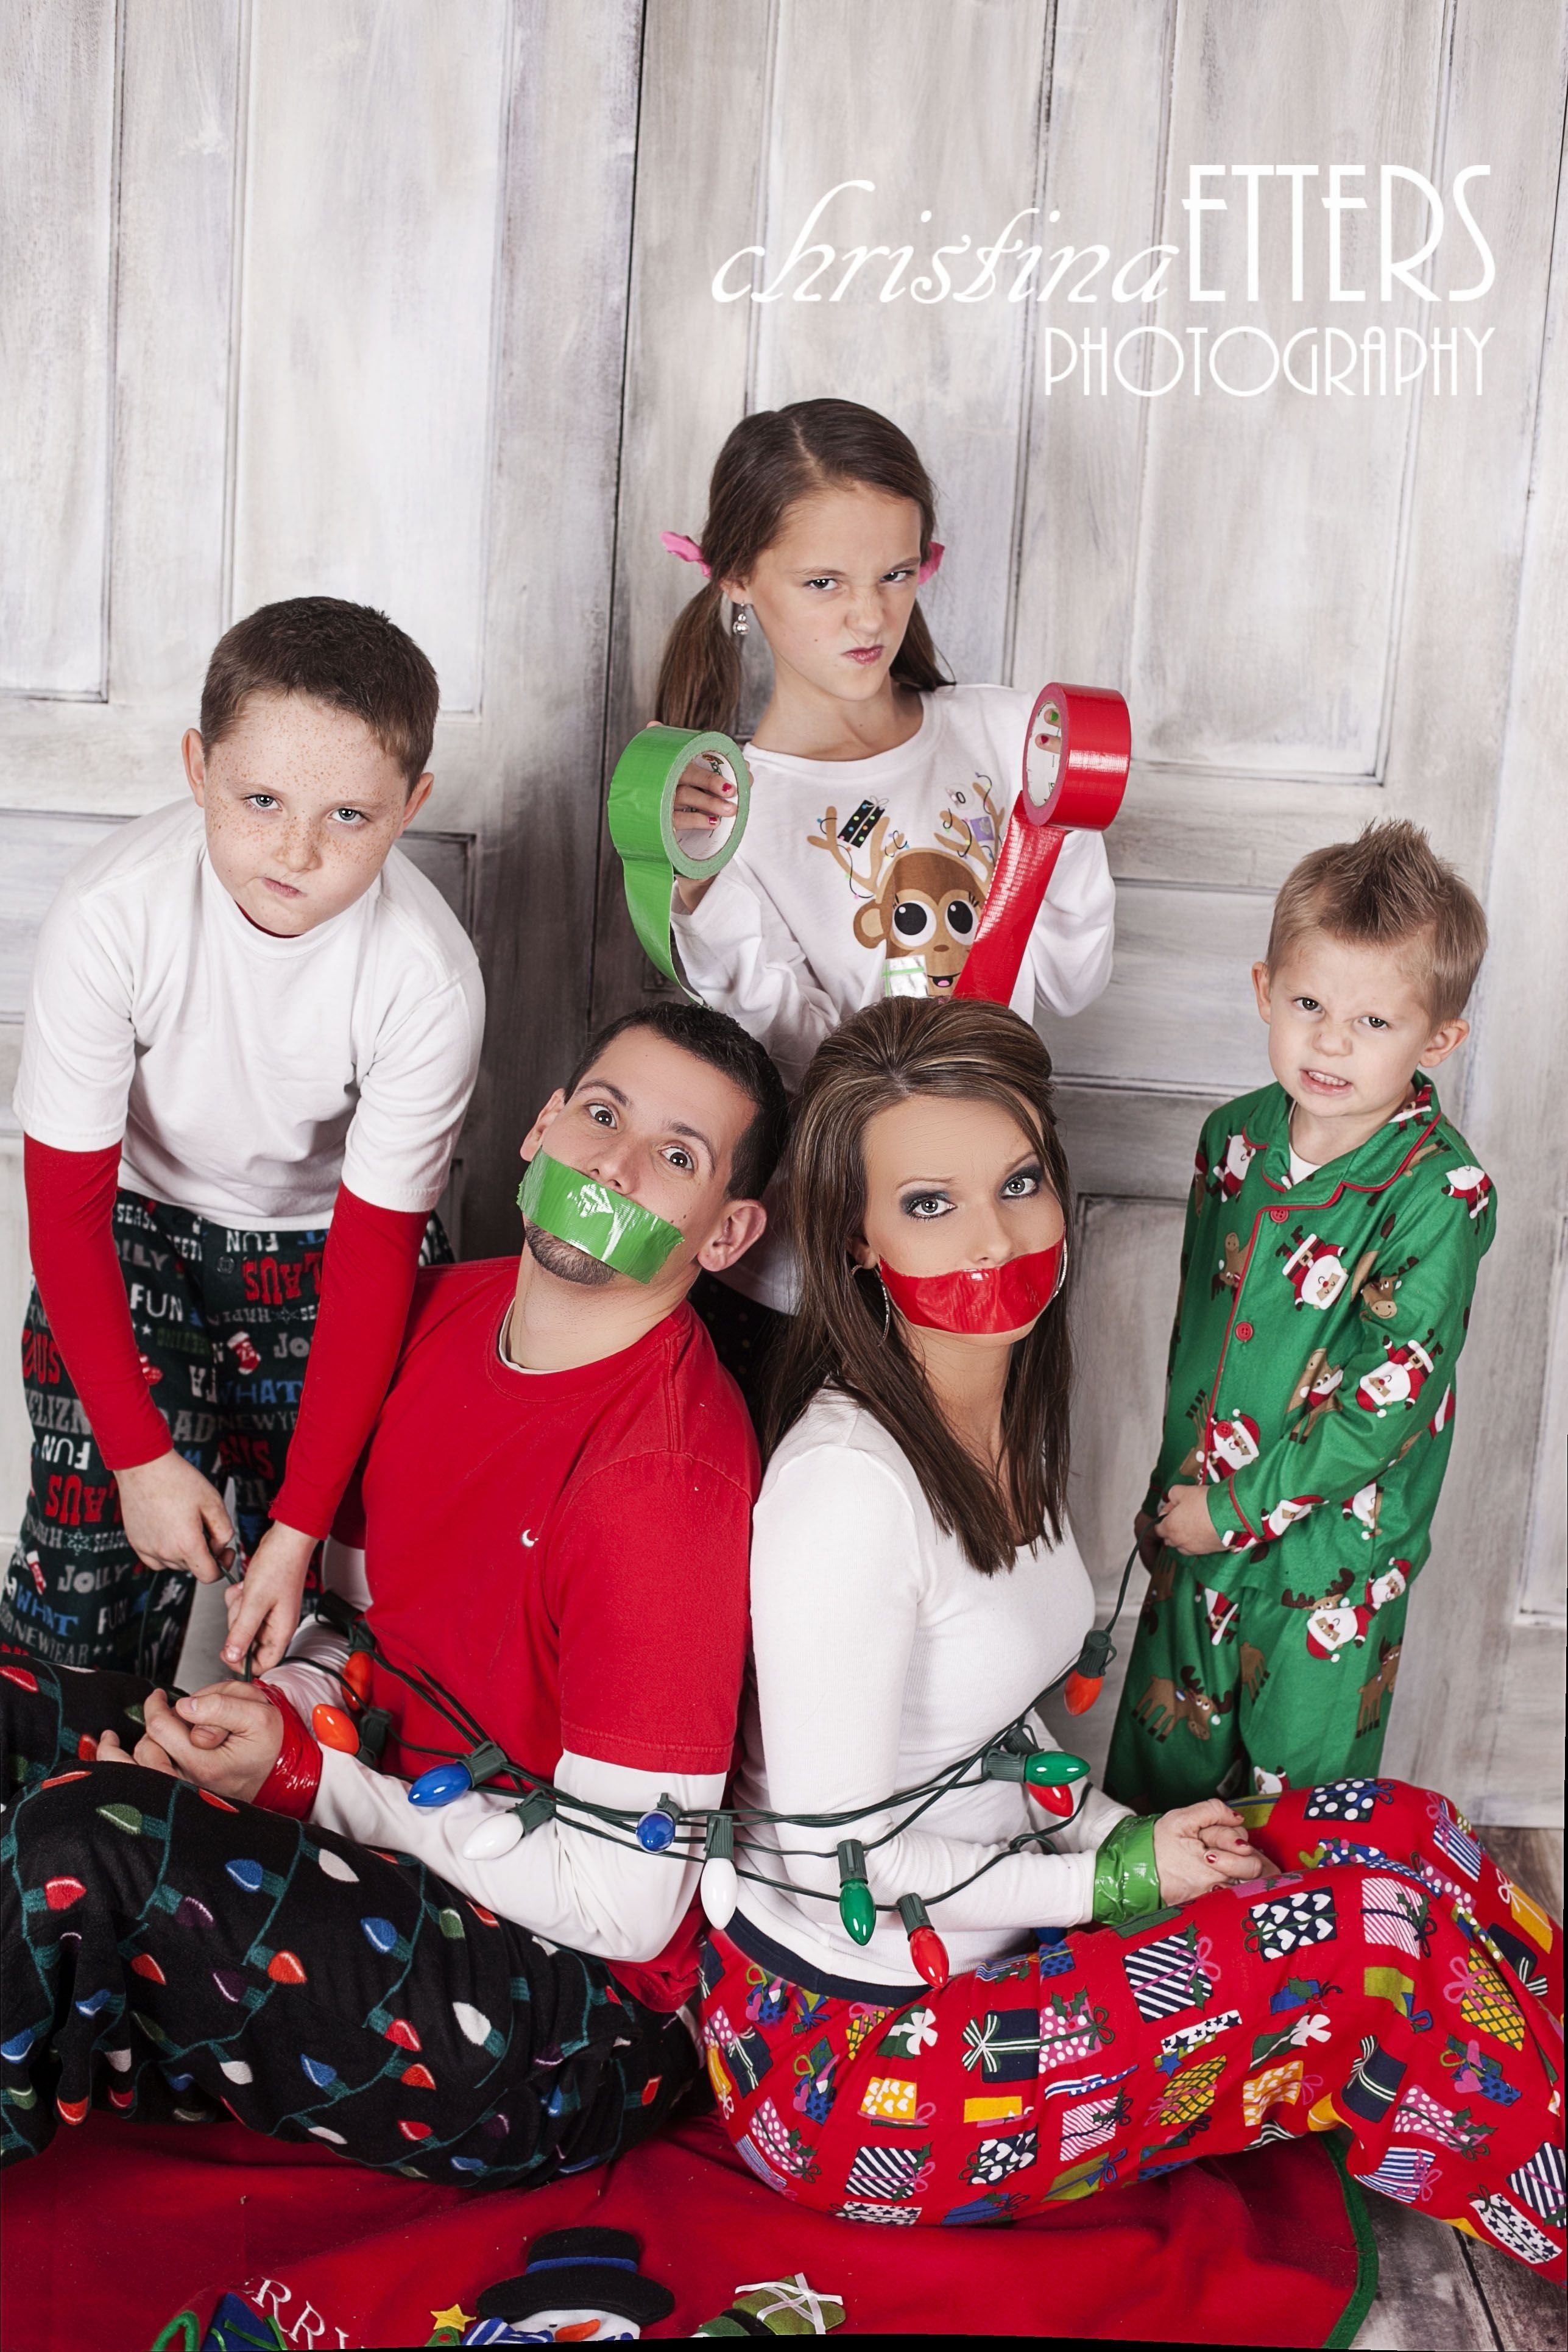 10 Most Popular Cute Family Christmas Card Ideas cute family christmas photo kids take parents hostage pinteres 4 2020